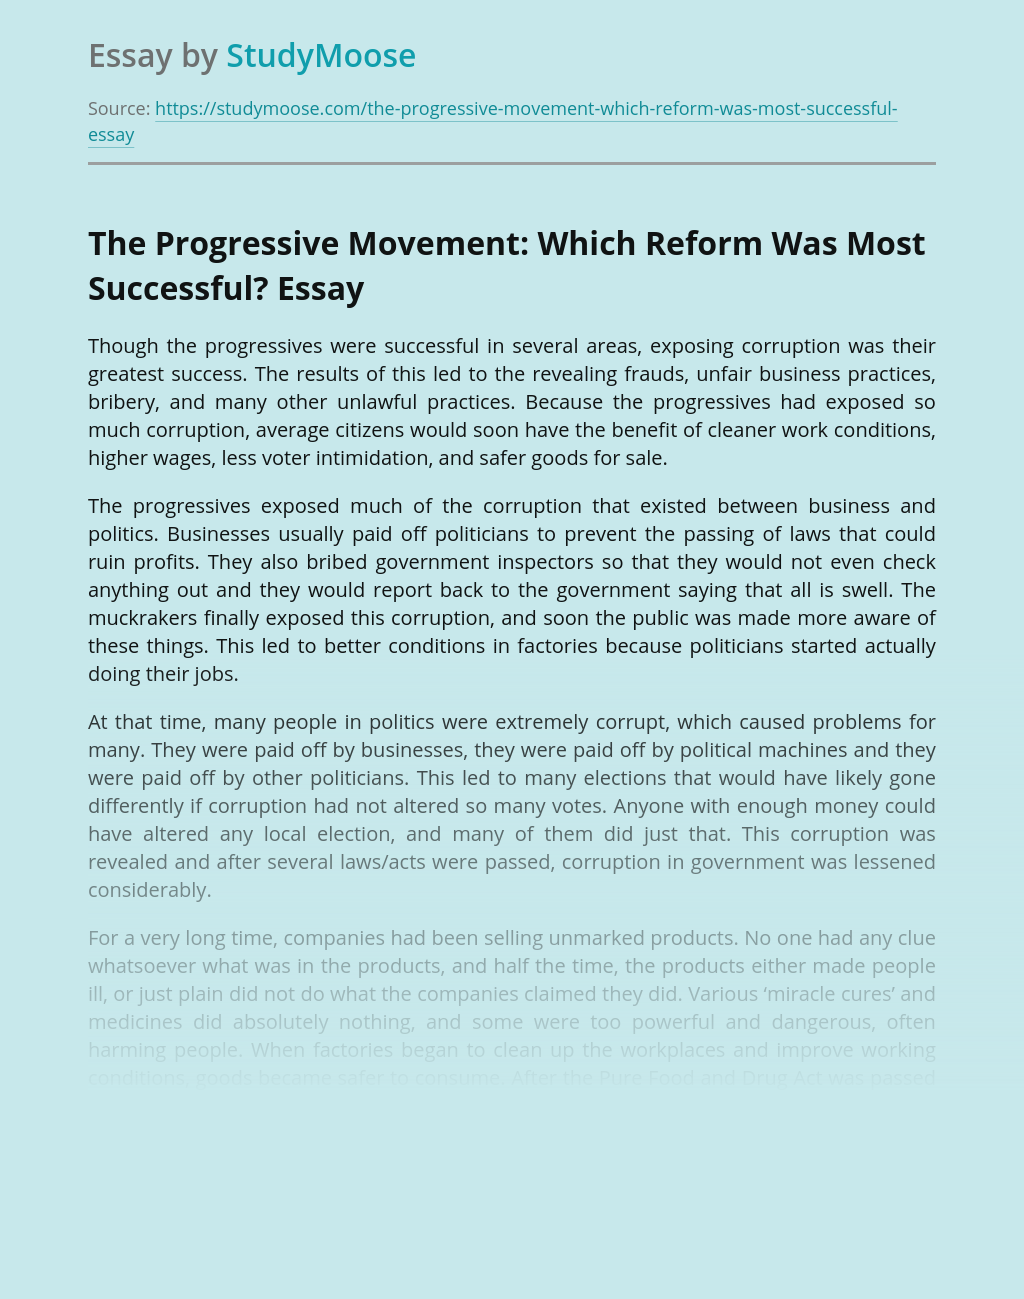 The Progressive Movement: Which Reform Was Most Successful?